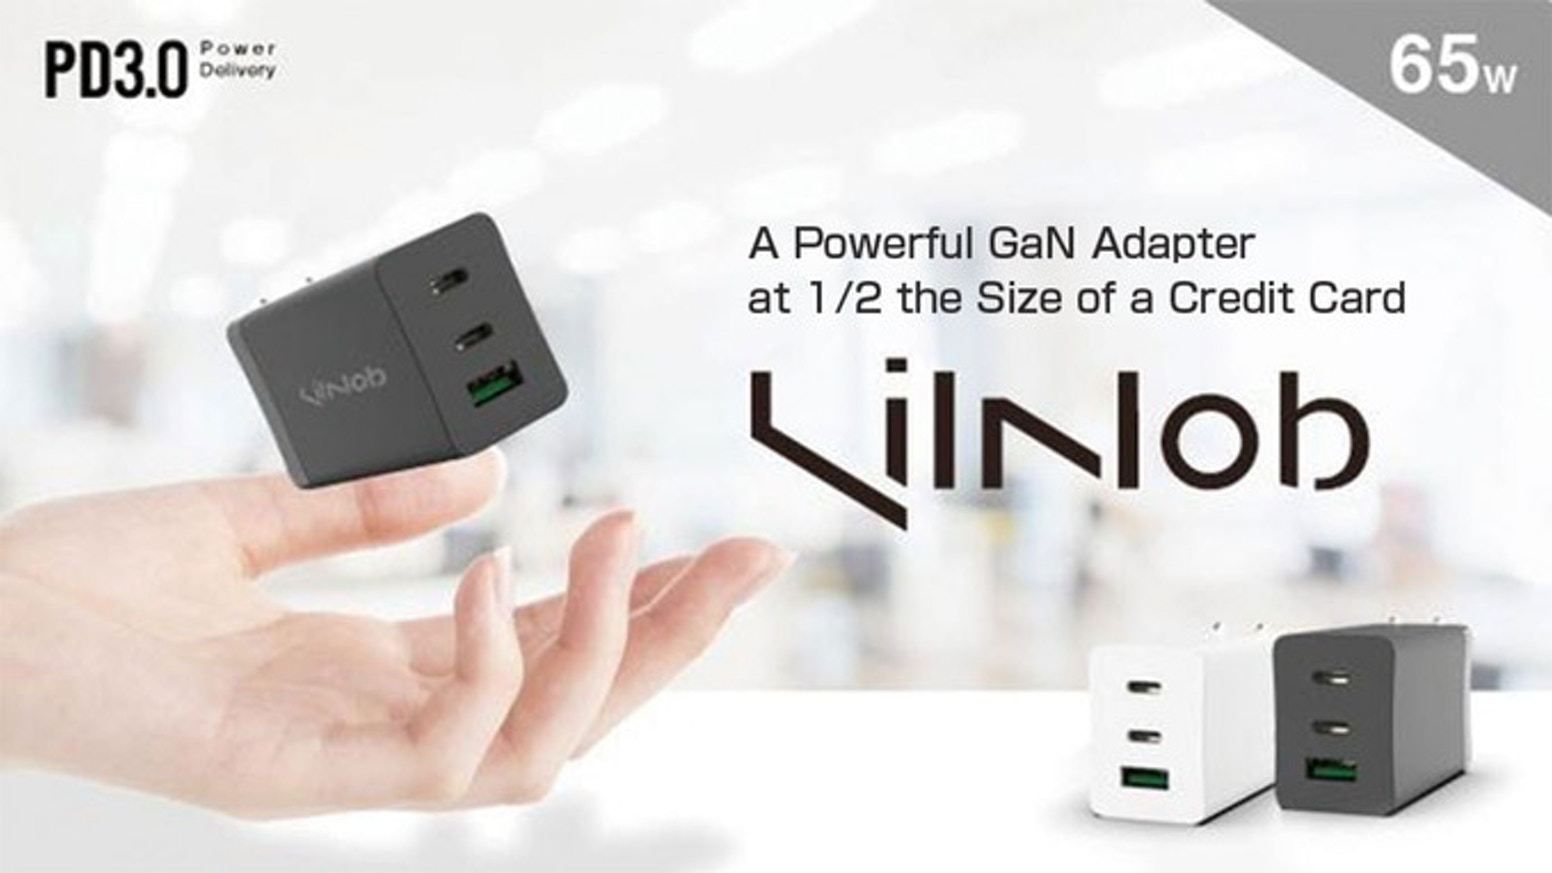 Powered by GaN which enables it to be the smallest possible size | High output of 65W | 2 x USB-C ports & 1 x USB-A